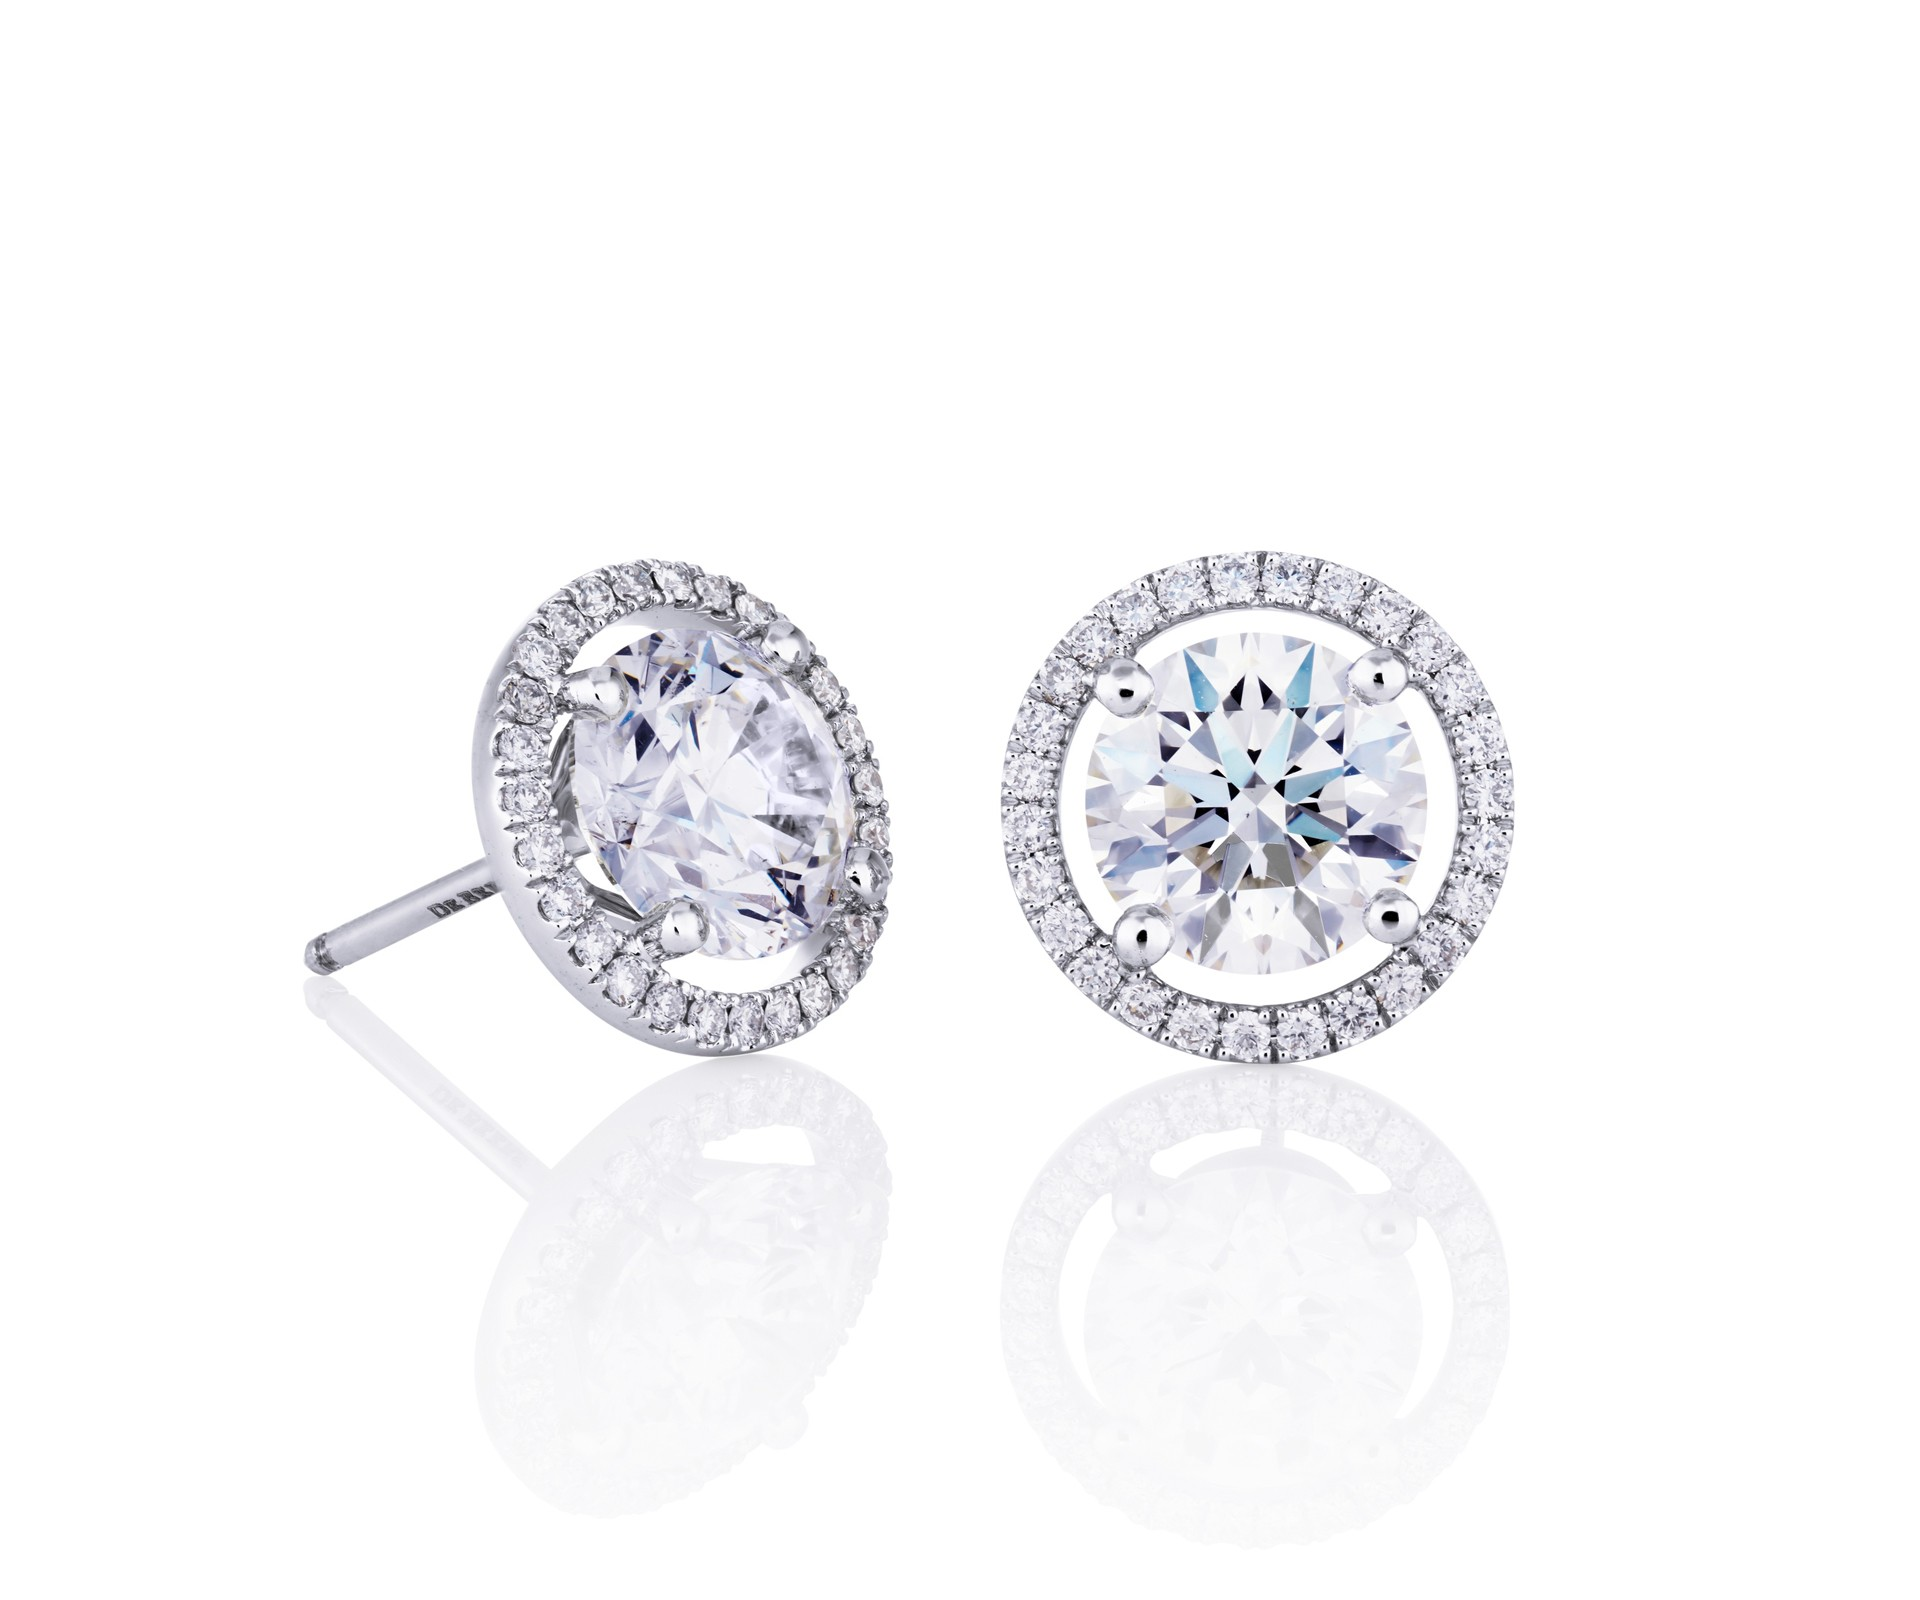 diamond earrings de beers aura stud earrings yrepmkd